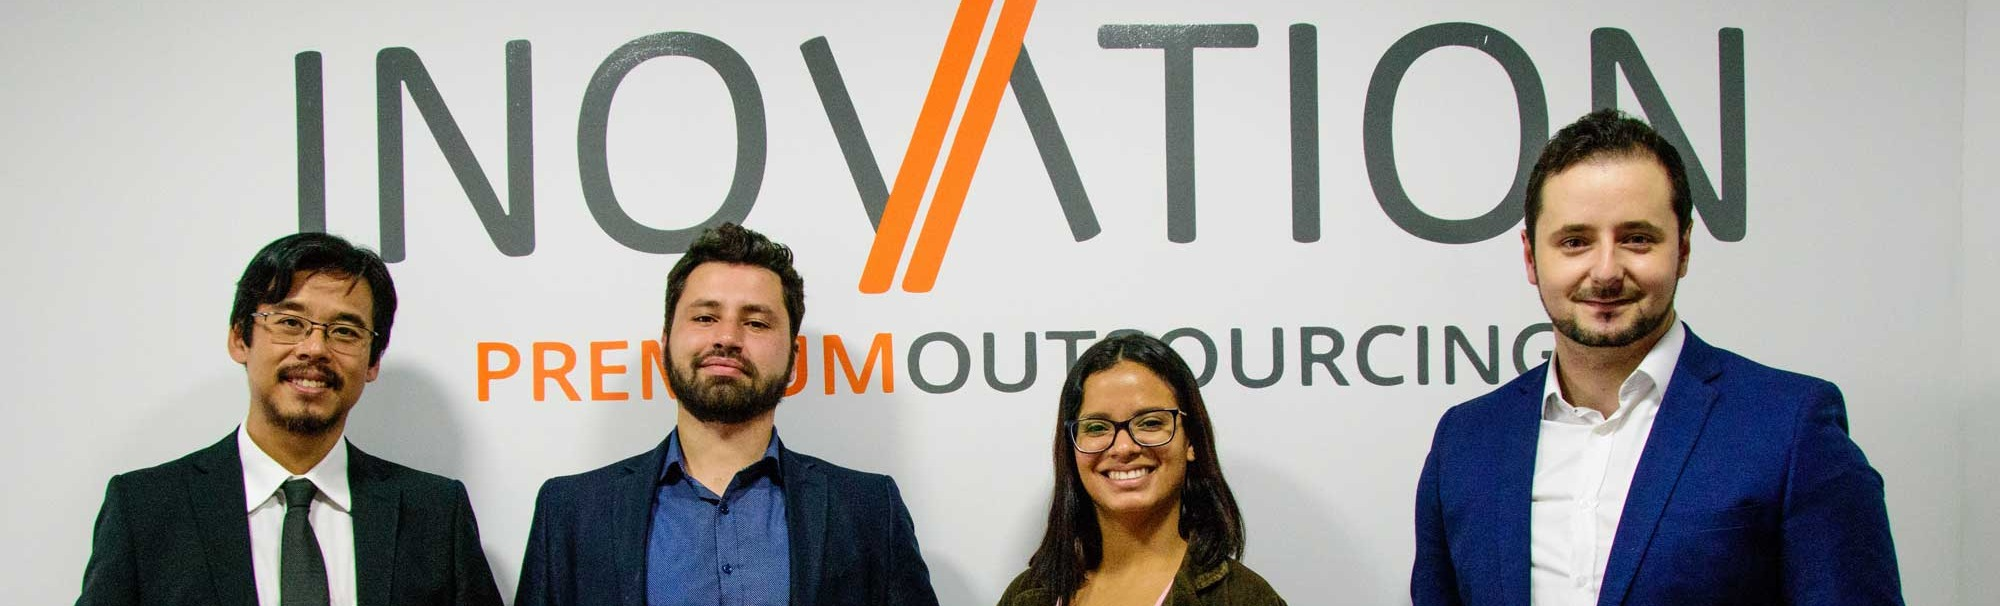 Inovation IT Premium Outsourcing